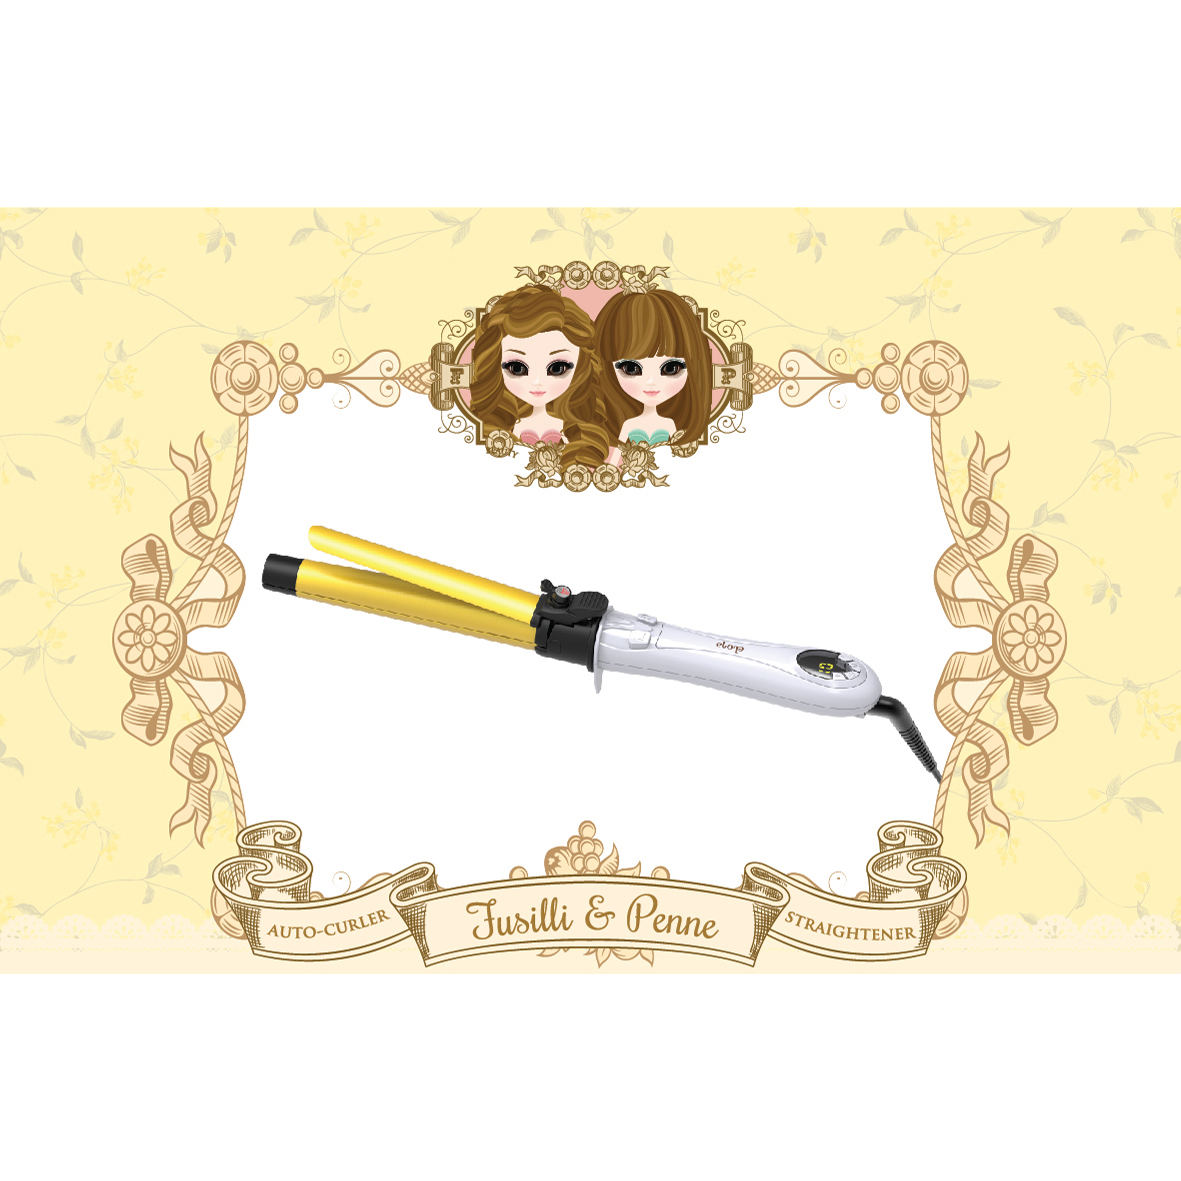 ELONA FUSILLI AND PENNE AUTO-CURLER AND STRAIGHTENER thumbnail